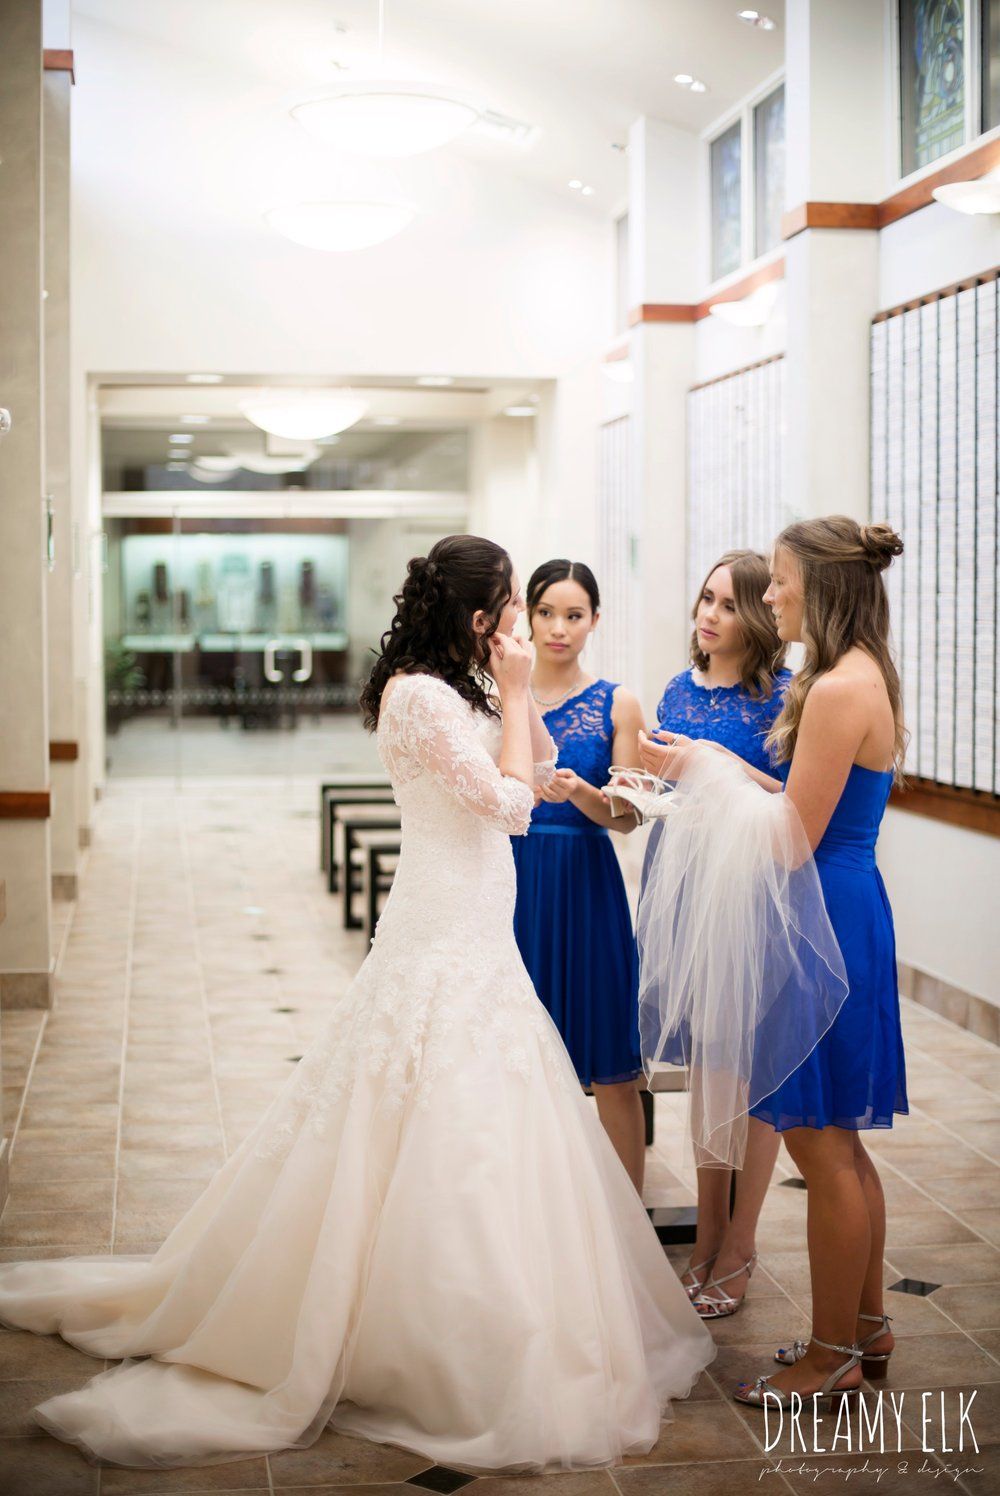 bride getting dressed, royal blue david's bridal bridesmaid, Misora Bridal, halo beauty bar makeup, Lisa Pelayo Makeup & Beauty, bride, essence of australia wedding dress, jewish wedding ceremony, summer june jewish wedding photo {dreamy elk photography and design}